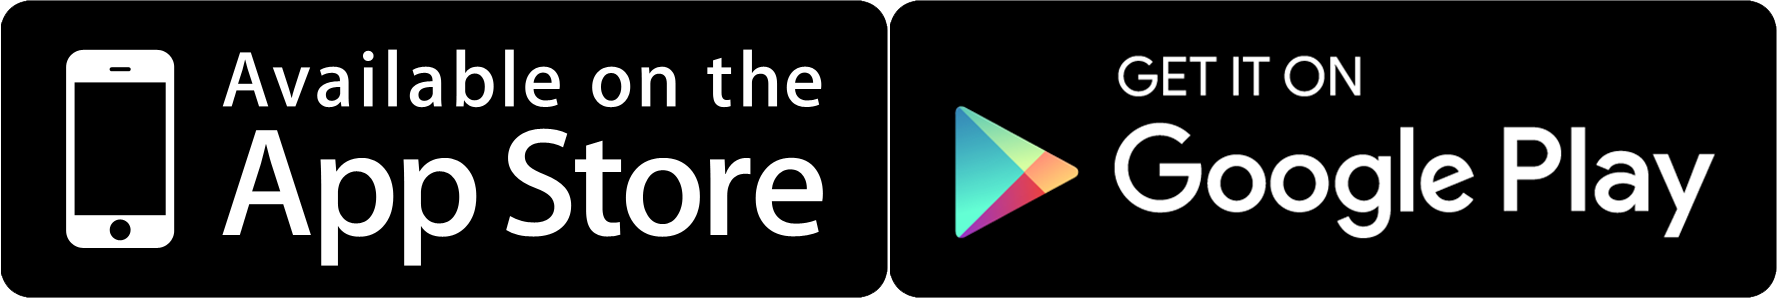 Home-AppStore-Button